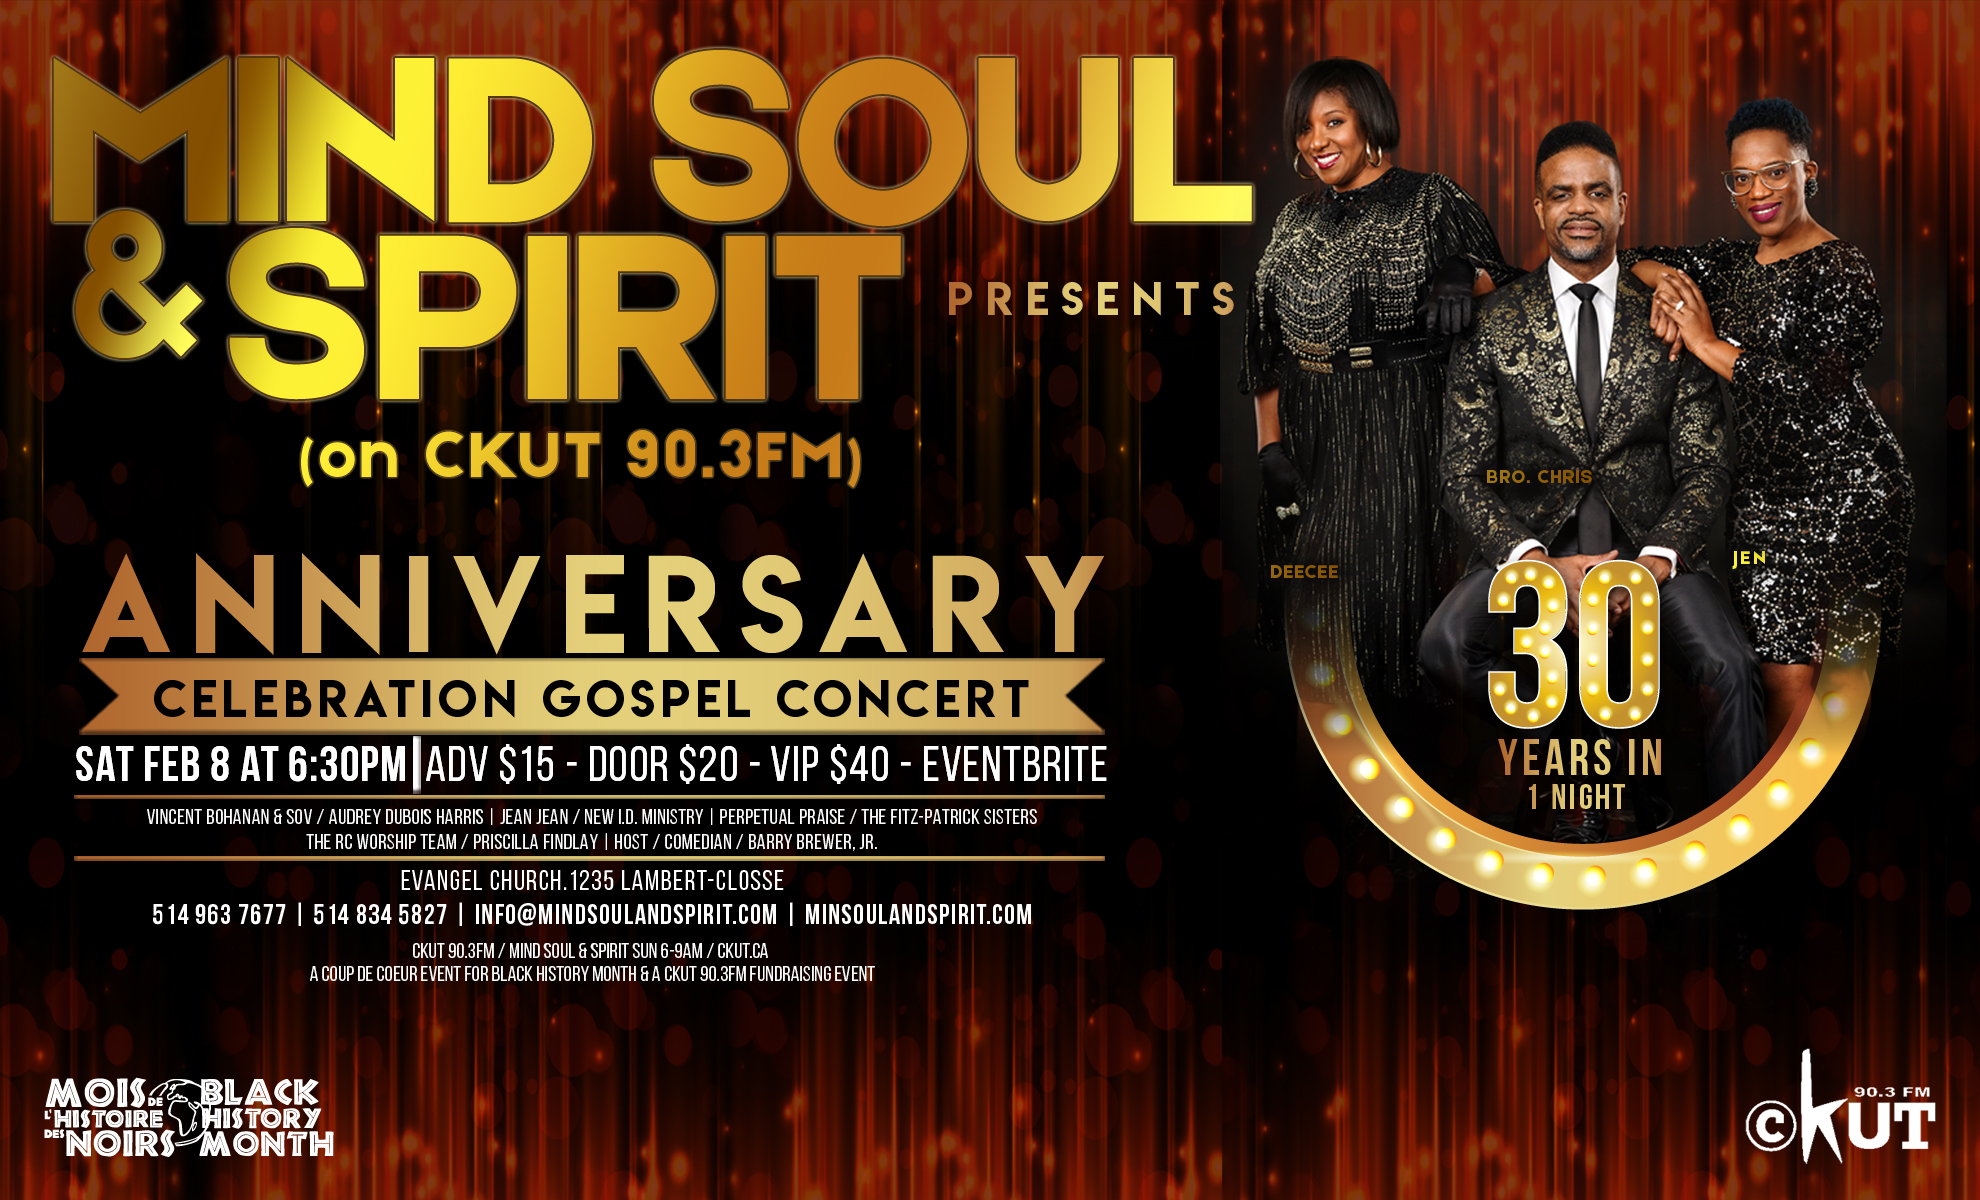 30 Years In 1 Night: Mind Soul & Spirit 30th Anniversary Gospel Celebration Concert